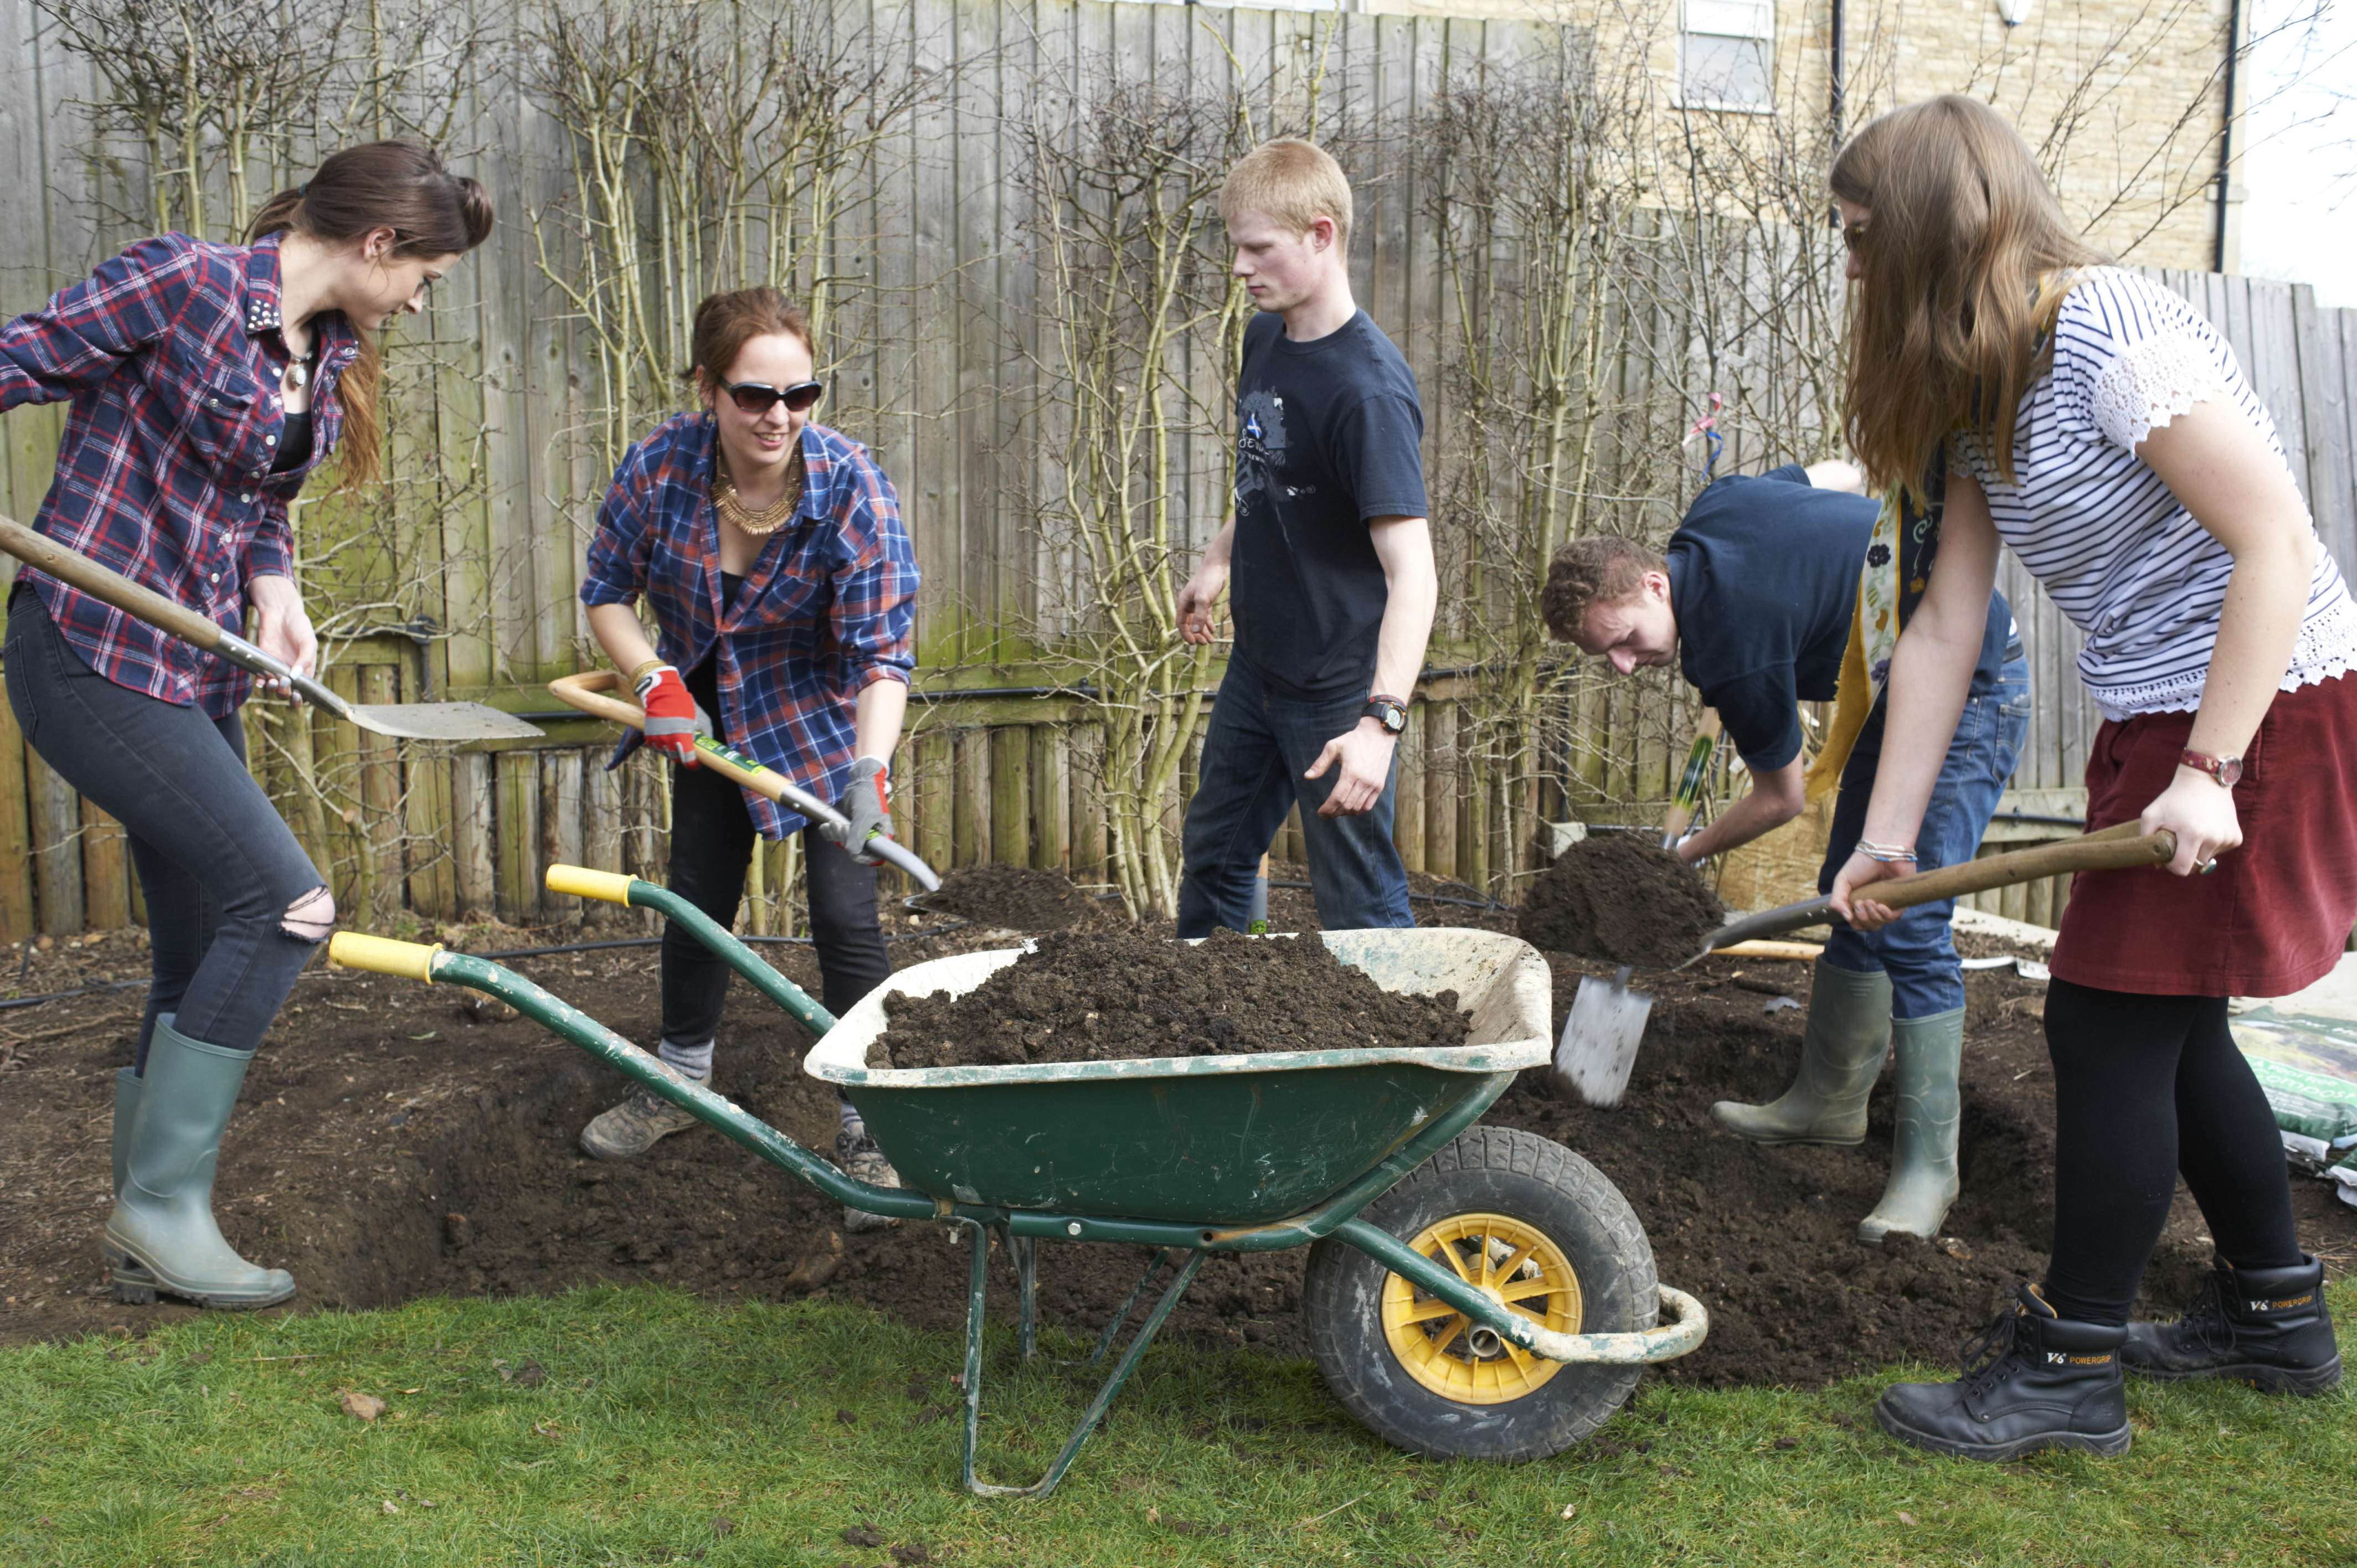 homebase the garden academy returns for its third consecutive year to offer young people opportunity